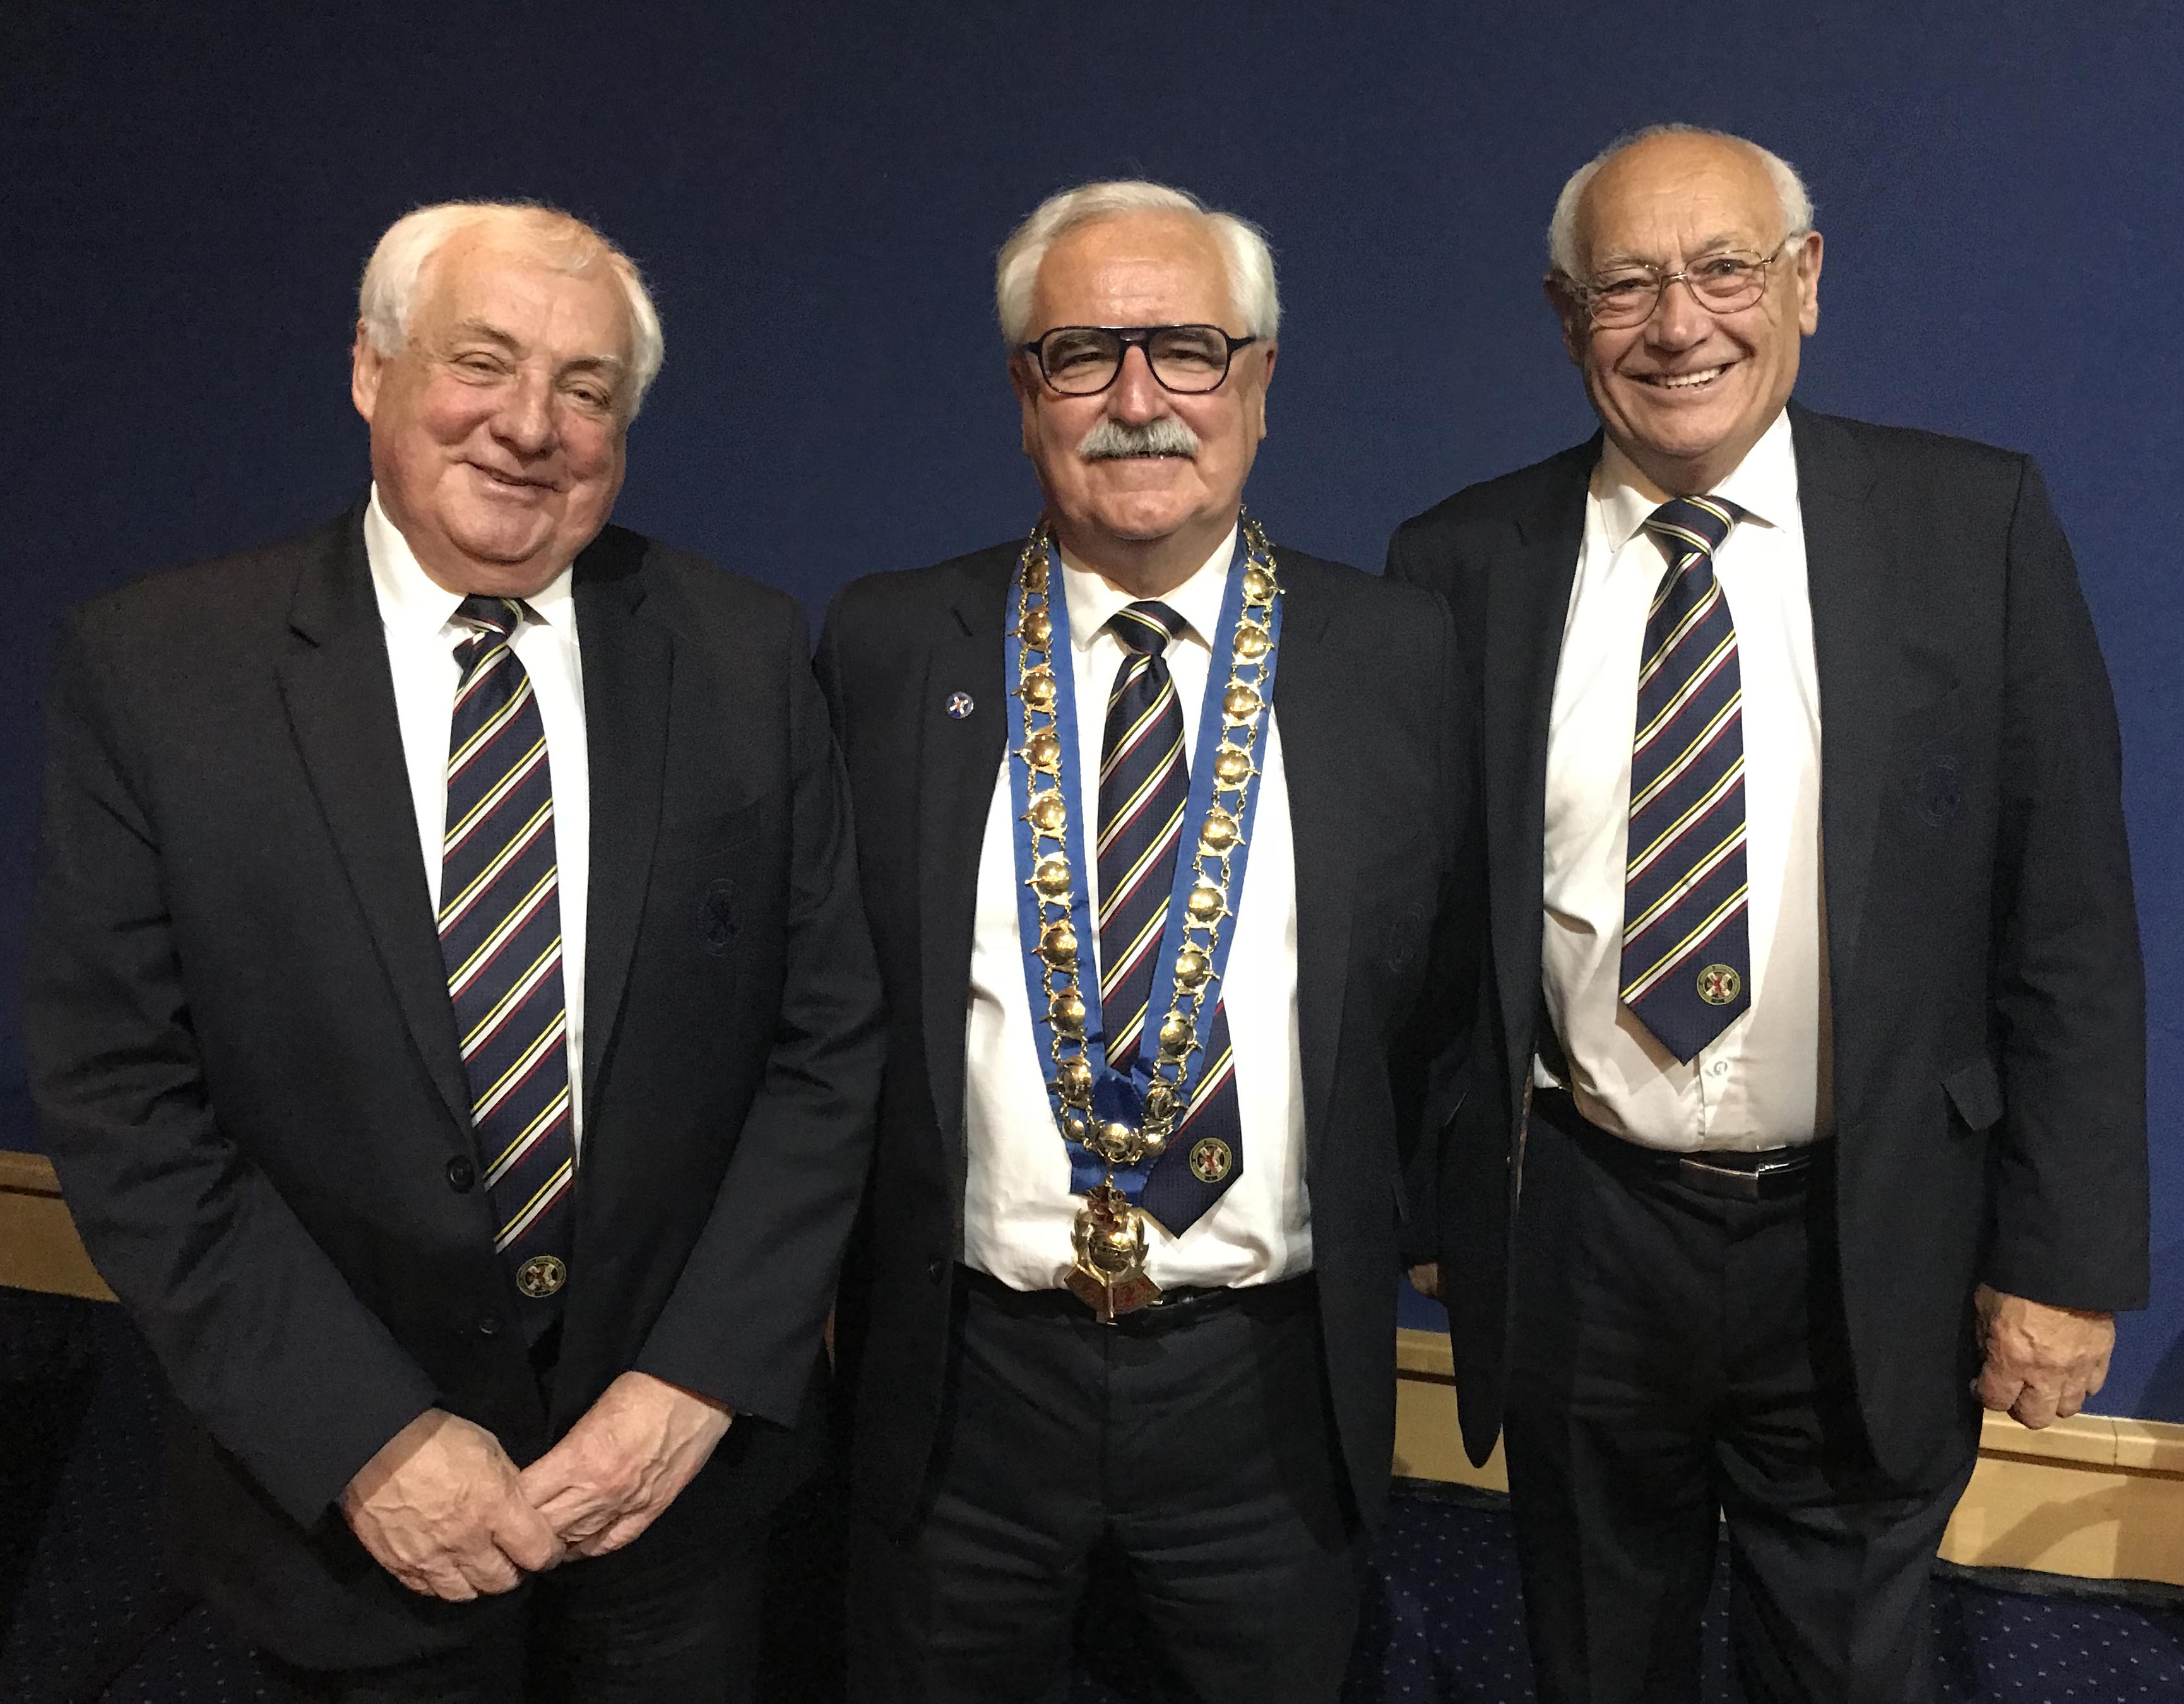 Scottish Amateur FA President and Vice President Elected at AGM 2018